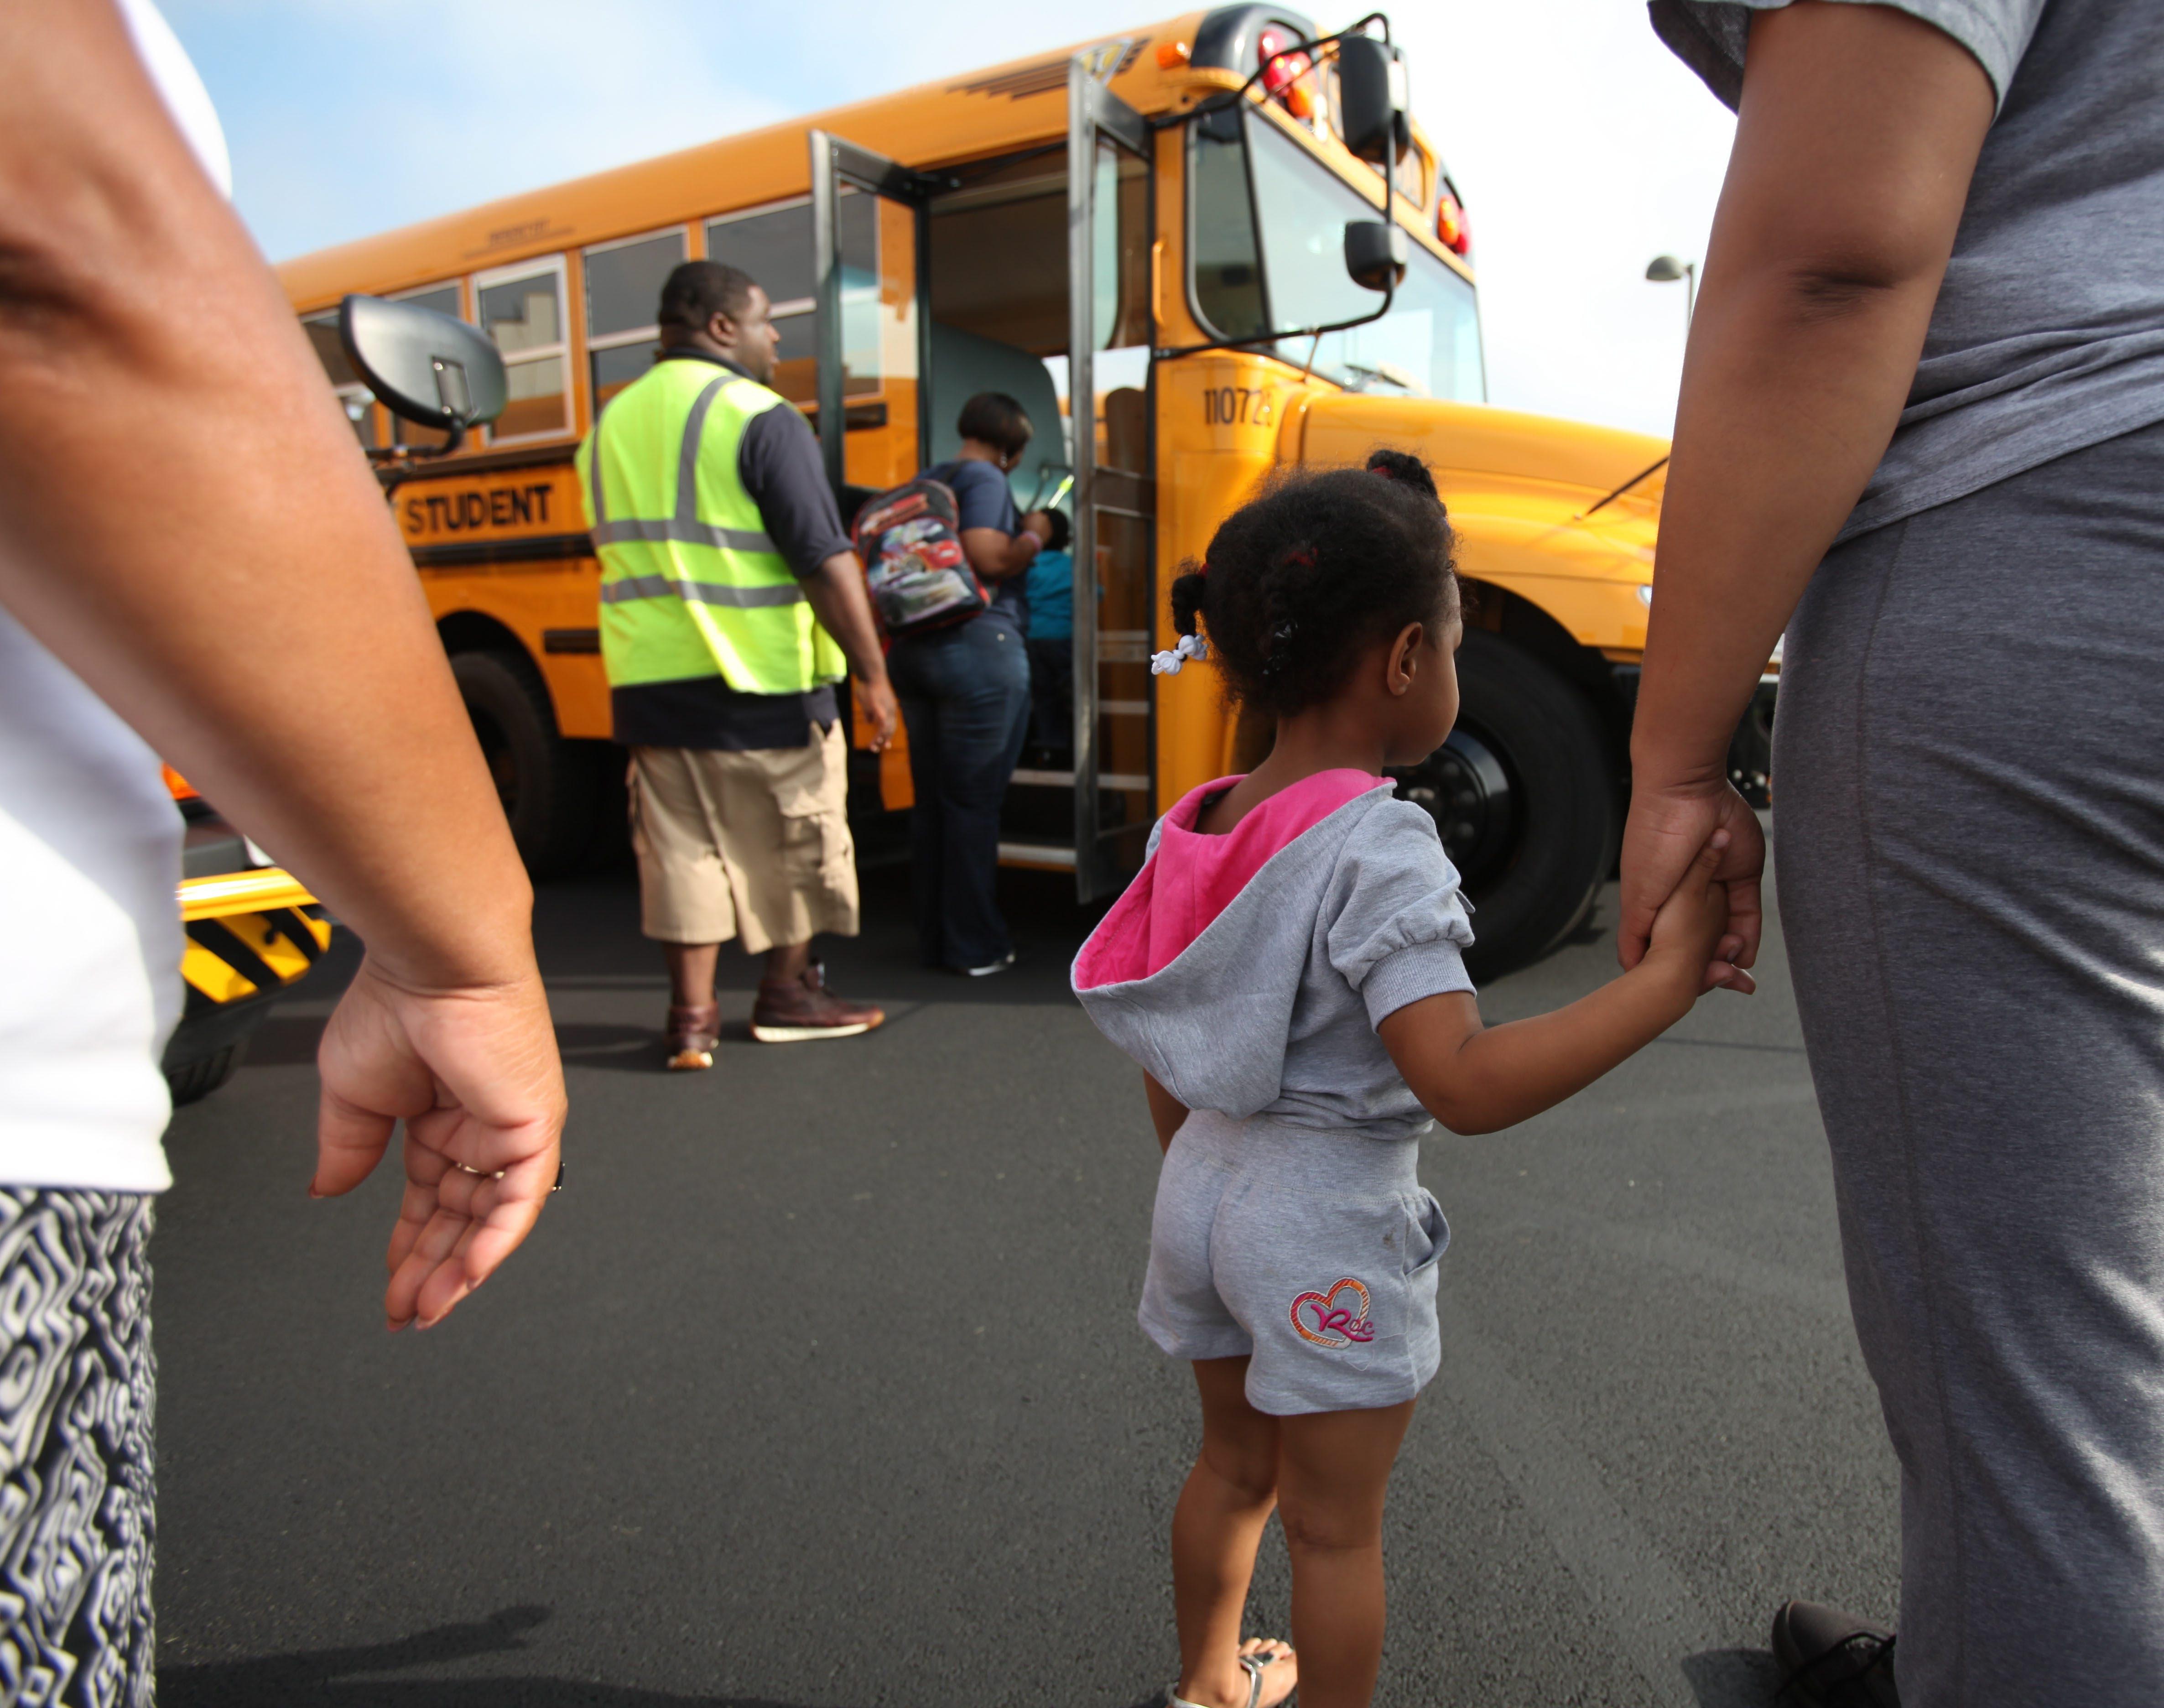 Starting all children with kindergarten can help the education system in Buffalo. (Buffalo News file photo)